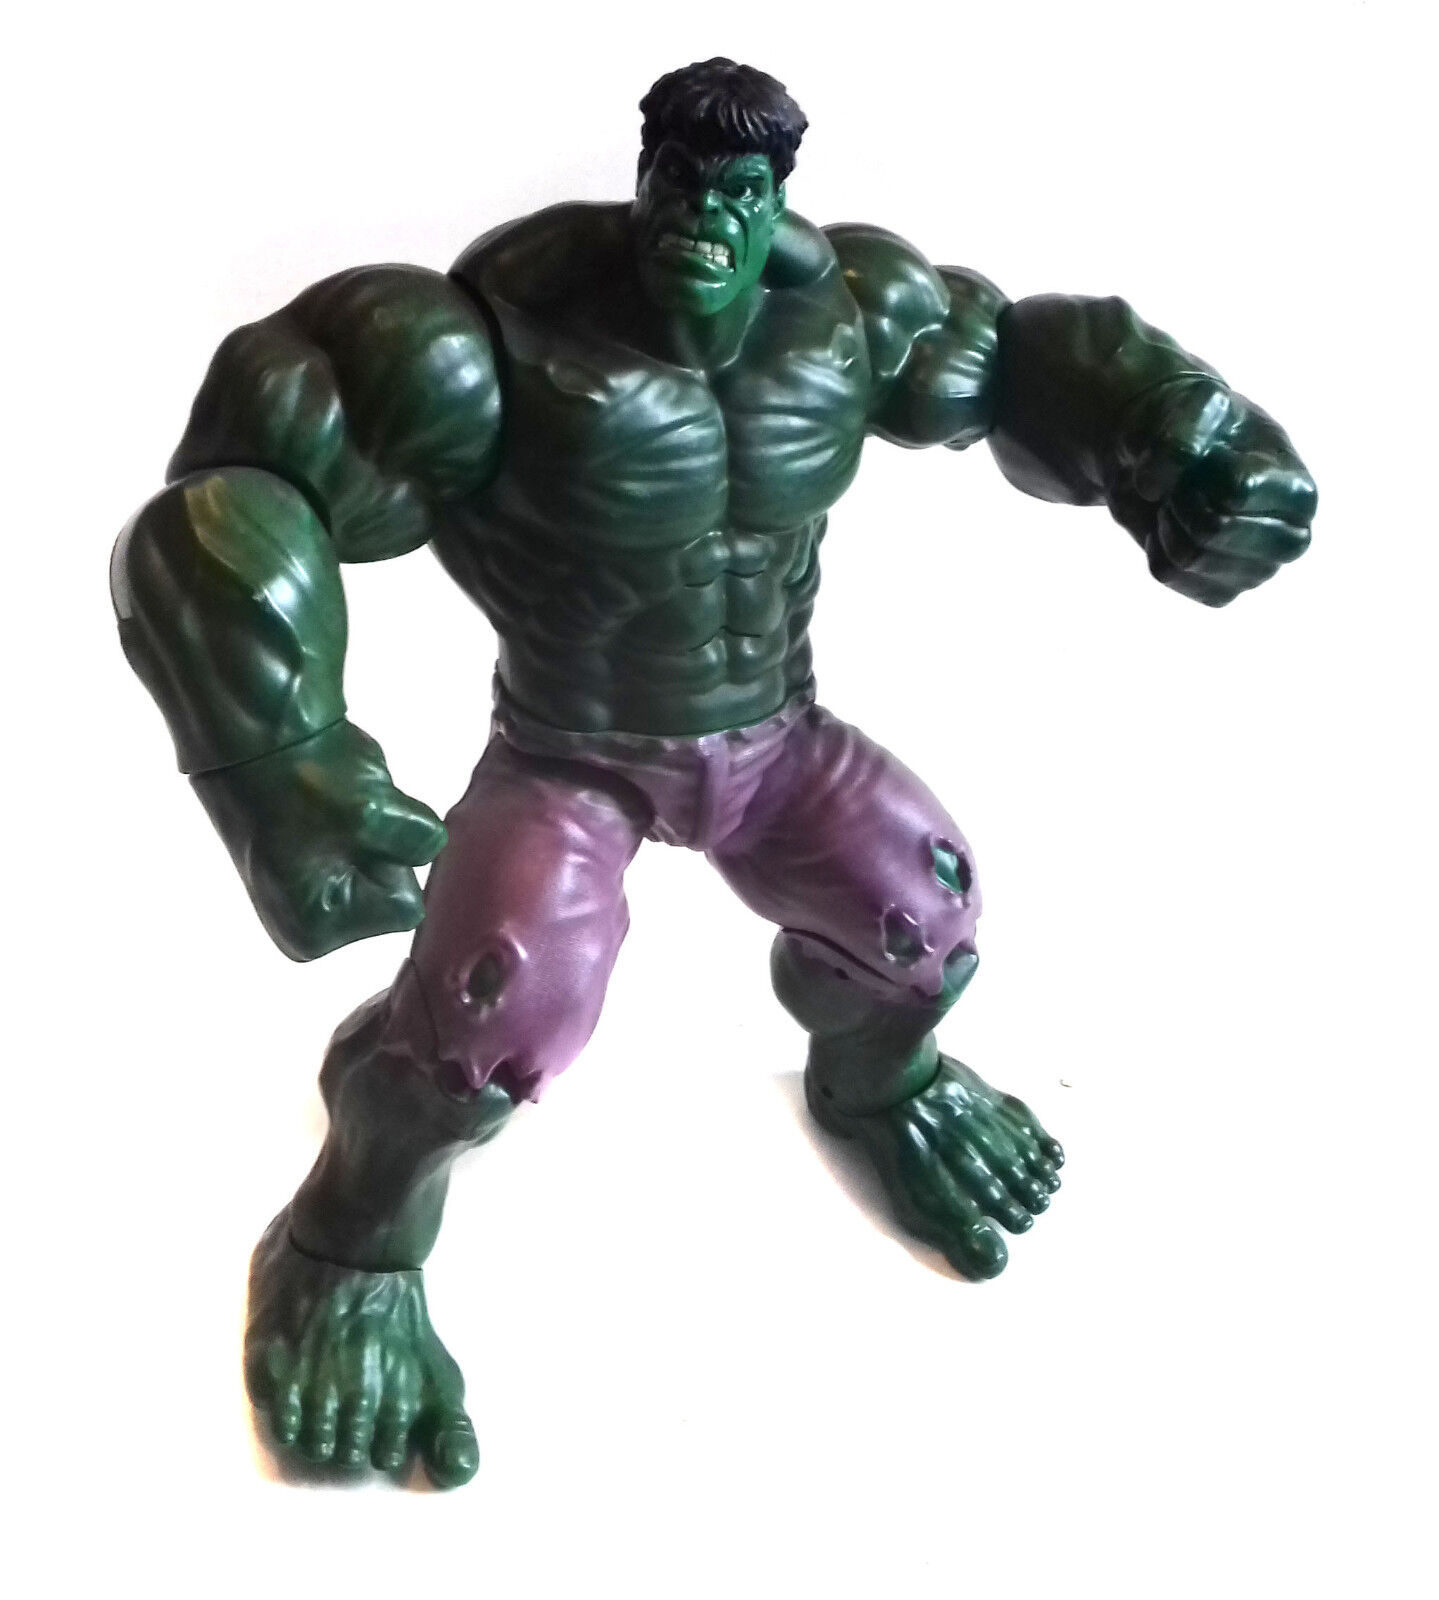 Marvel Comics, MASSIVE 15  tall Movie HULK figure with Sound FX , Avengers